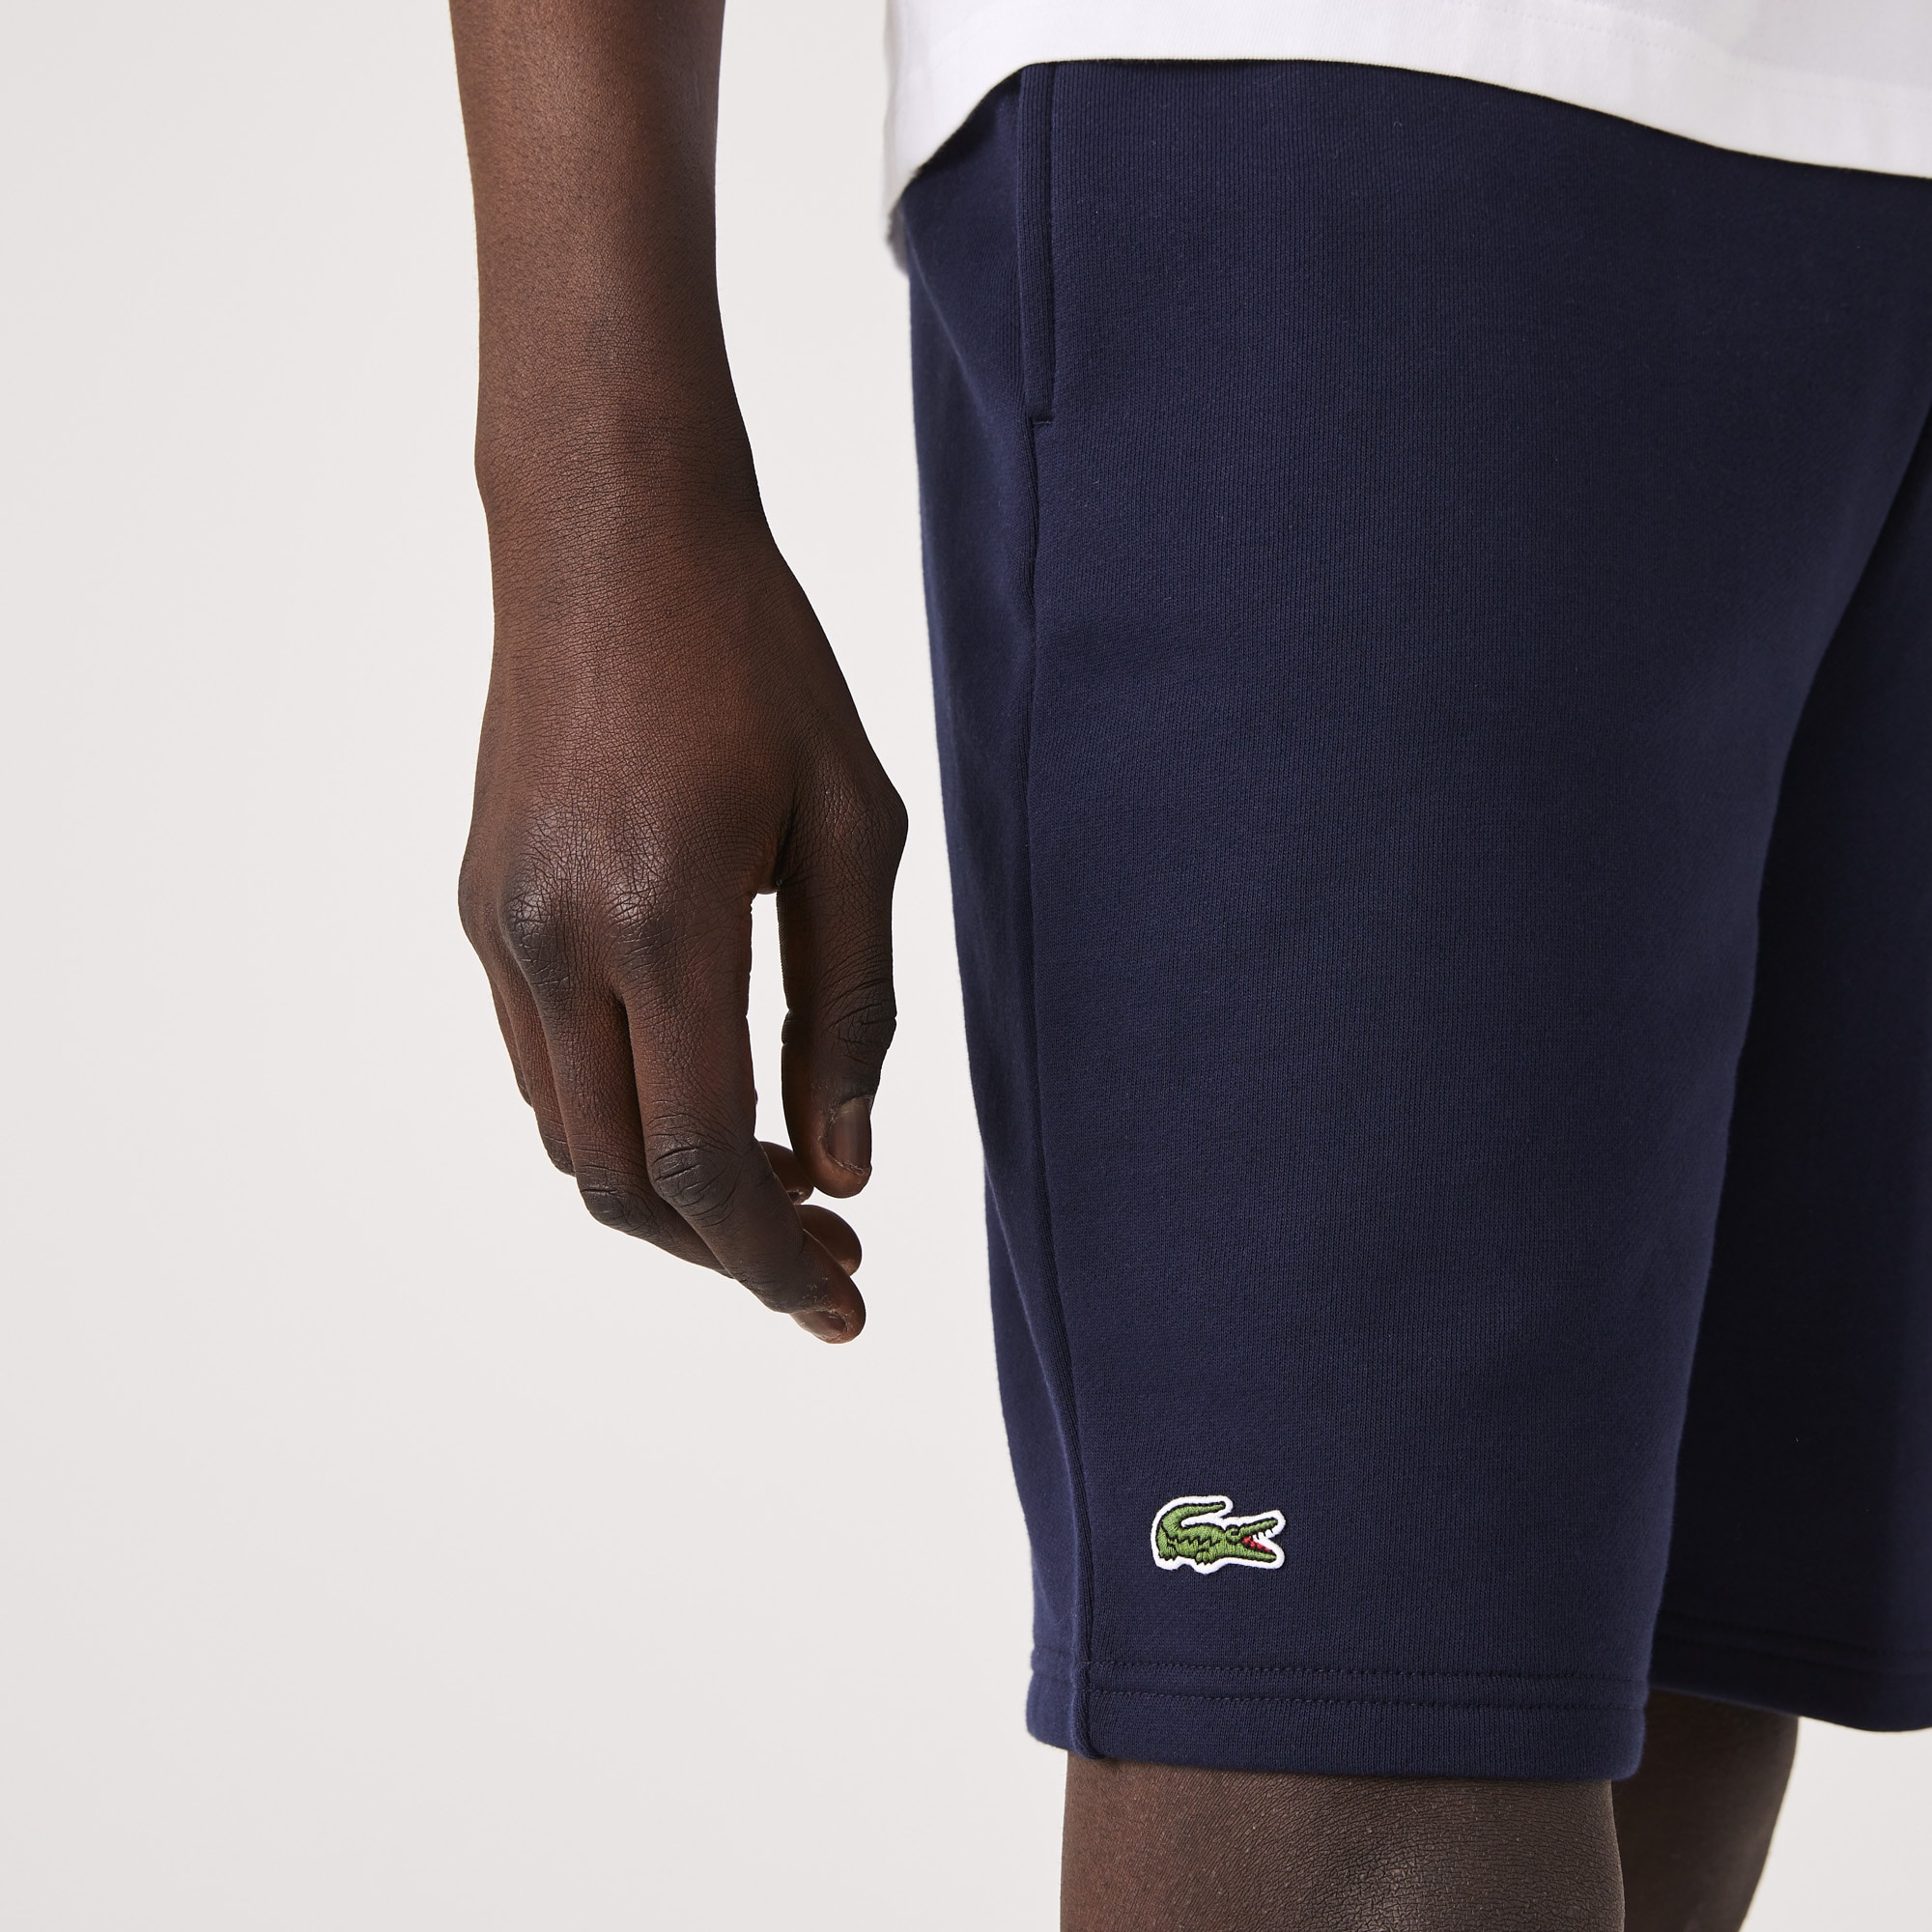 Herren-Shorts aus Fleece LACOSTE SPORT TENNIS